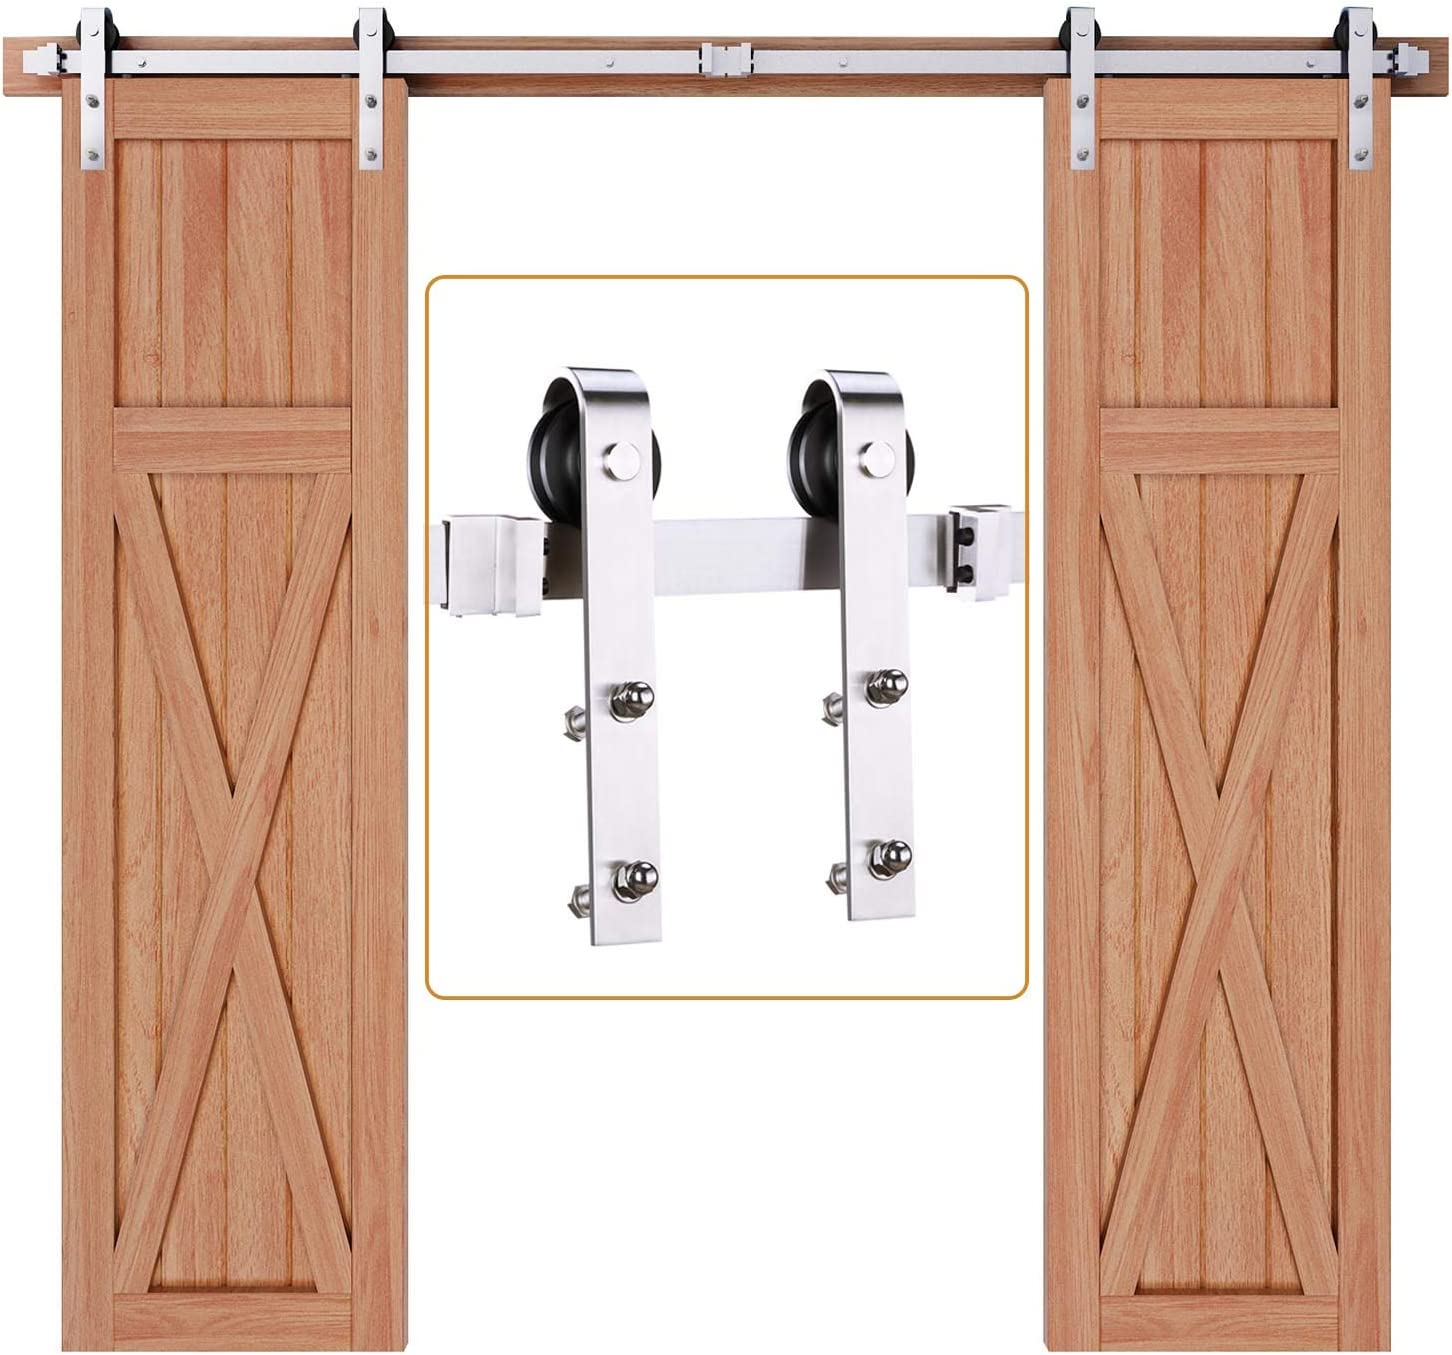 Length: 8ft Single kit 8ft Top Mount Stainless Steel Sliding Barn Wood Door Hardware Kits